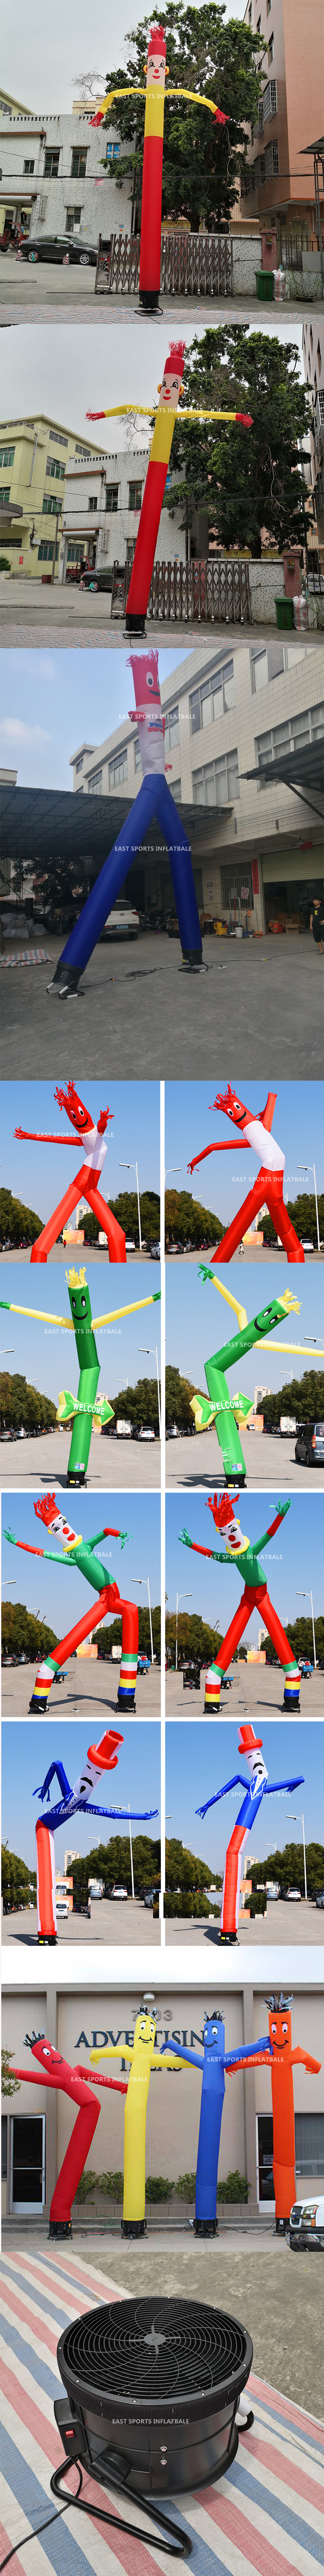 Wholesale small tube advertising clown inflatable Inflatable desktop sky air dancer